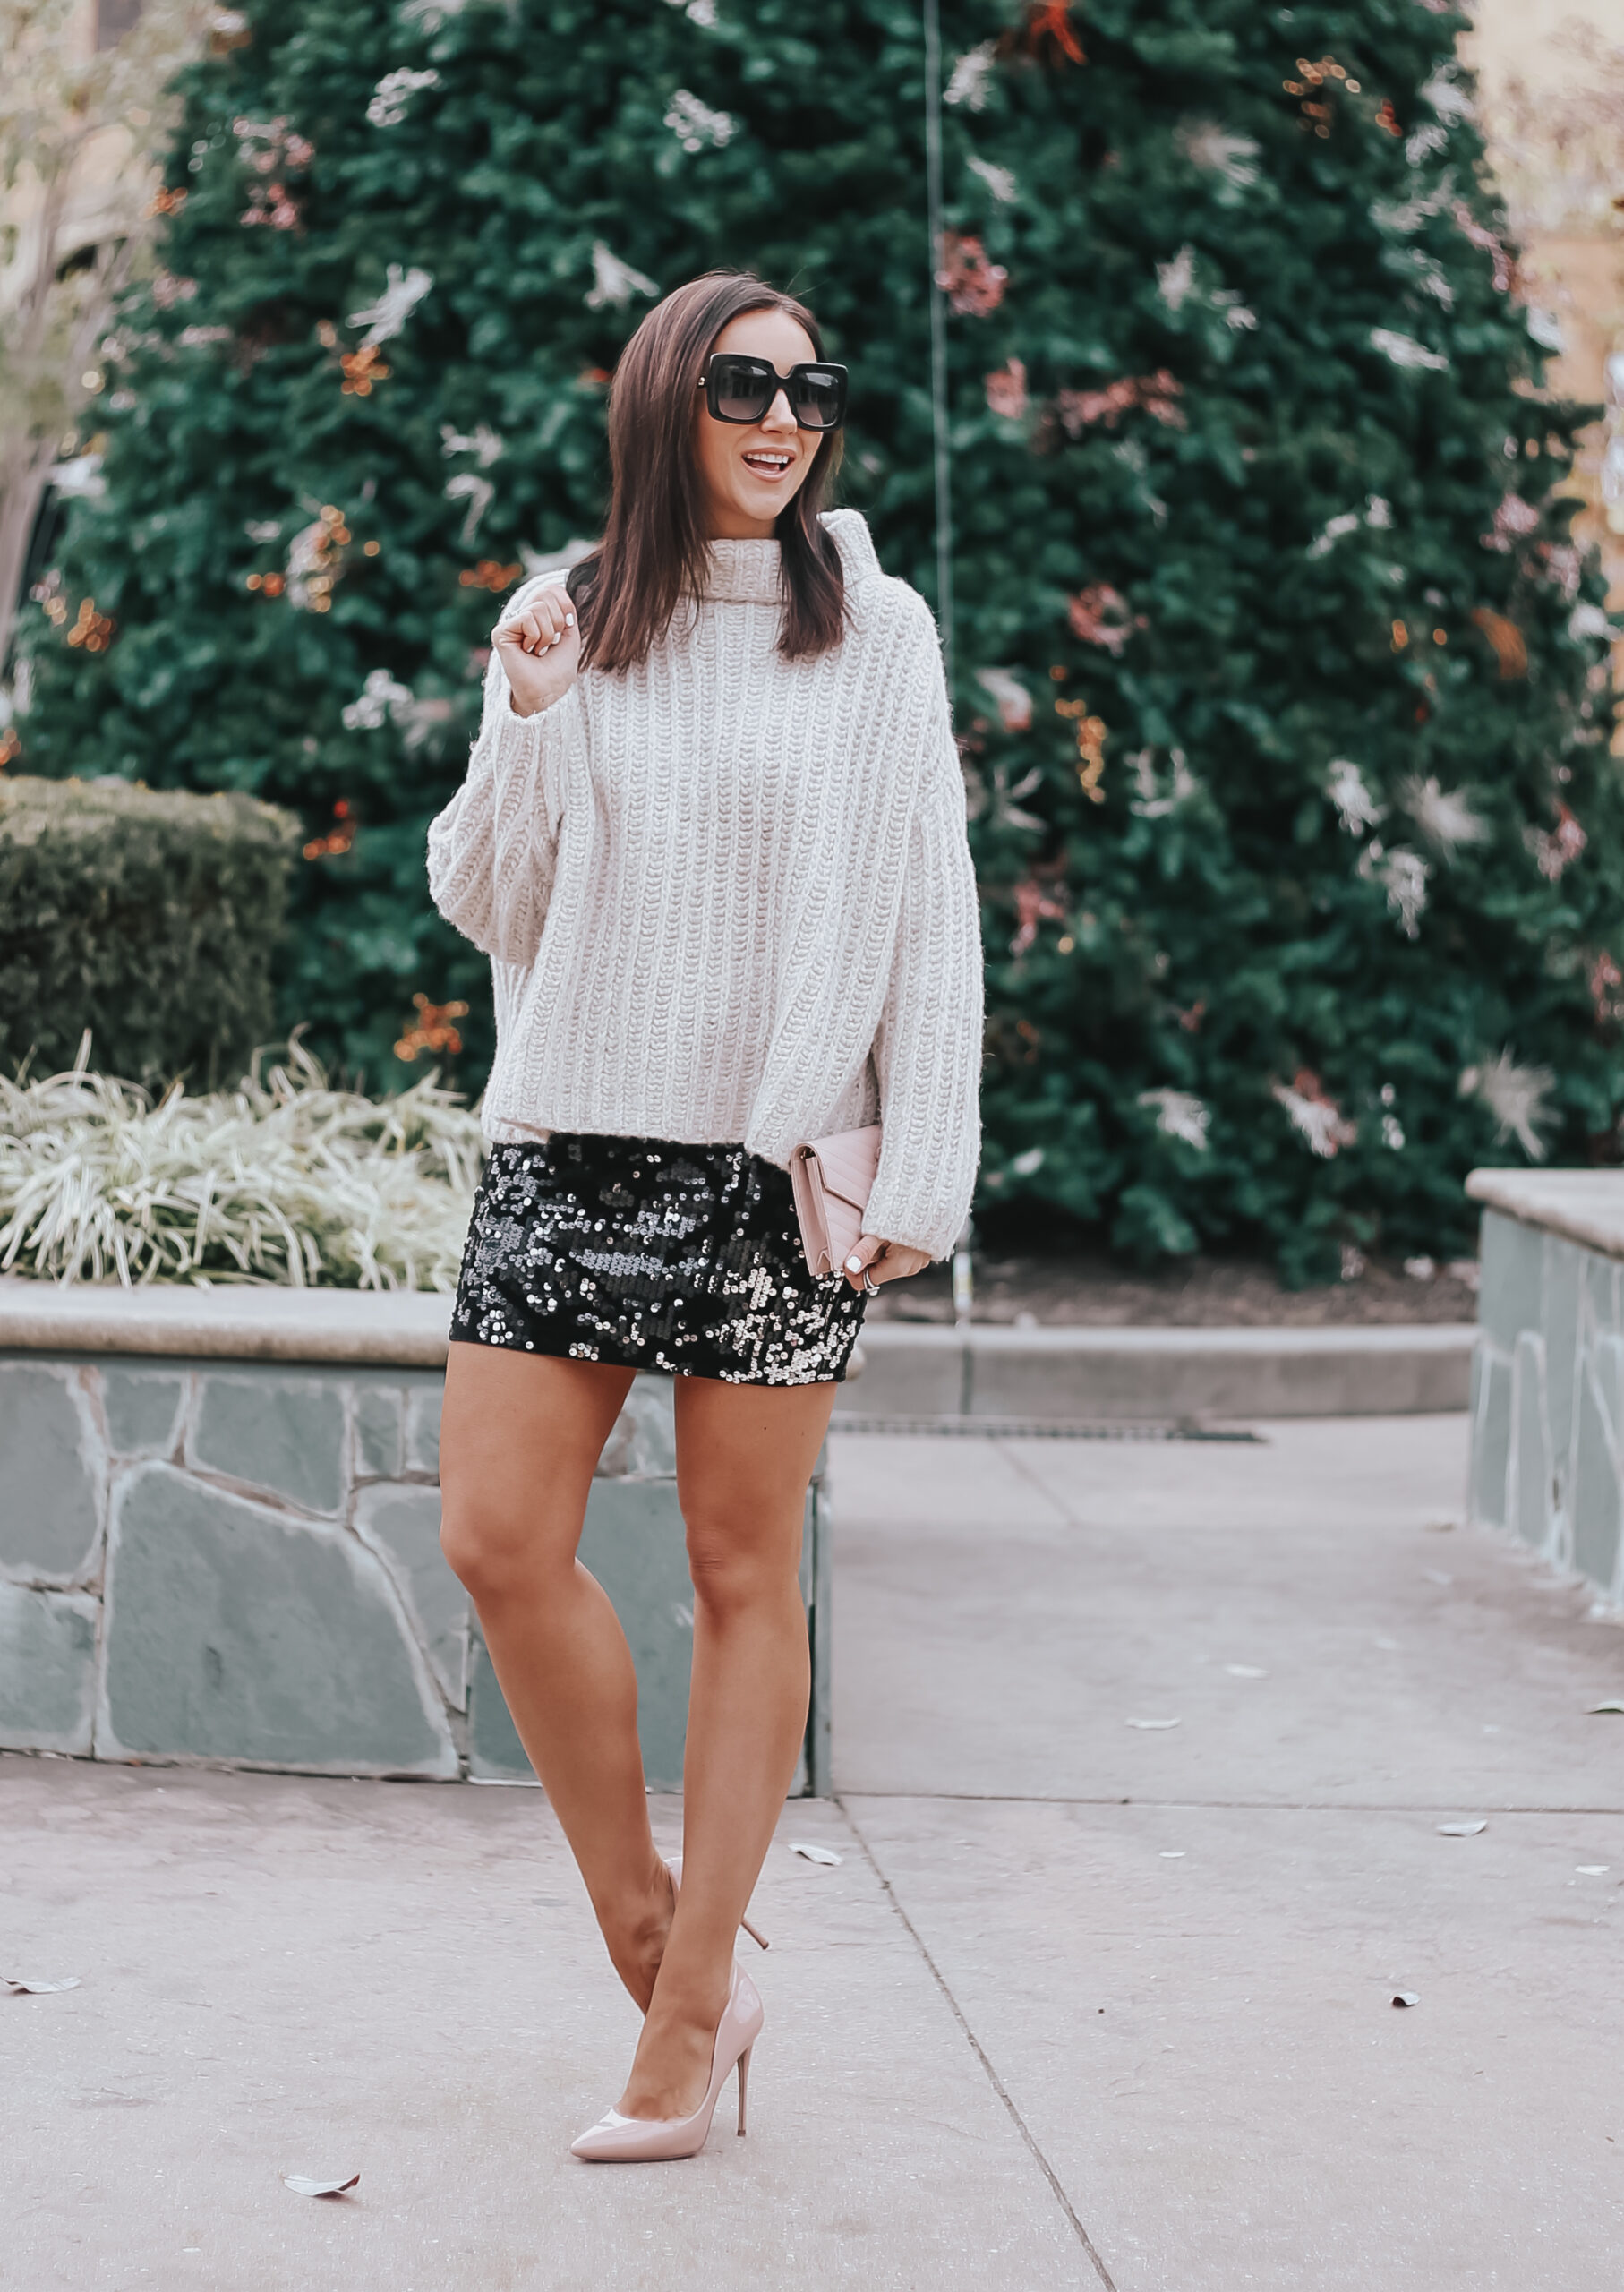 how to style short sequin skirt for the holidays, sequin mini skirt and chunky sweater outfit